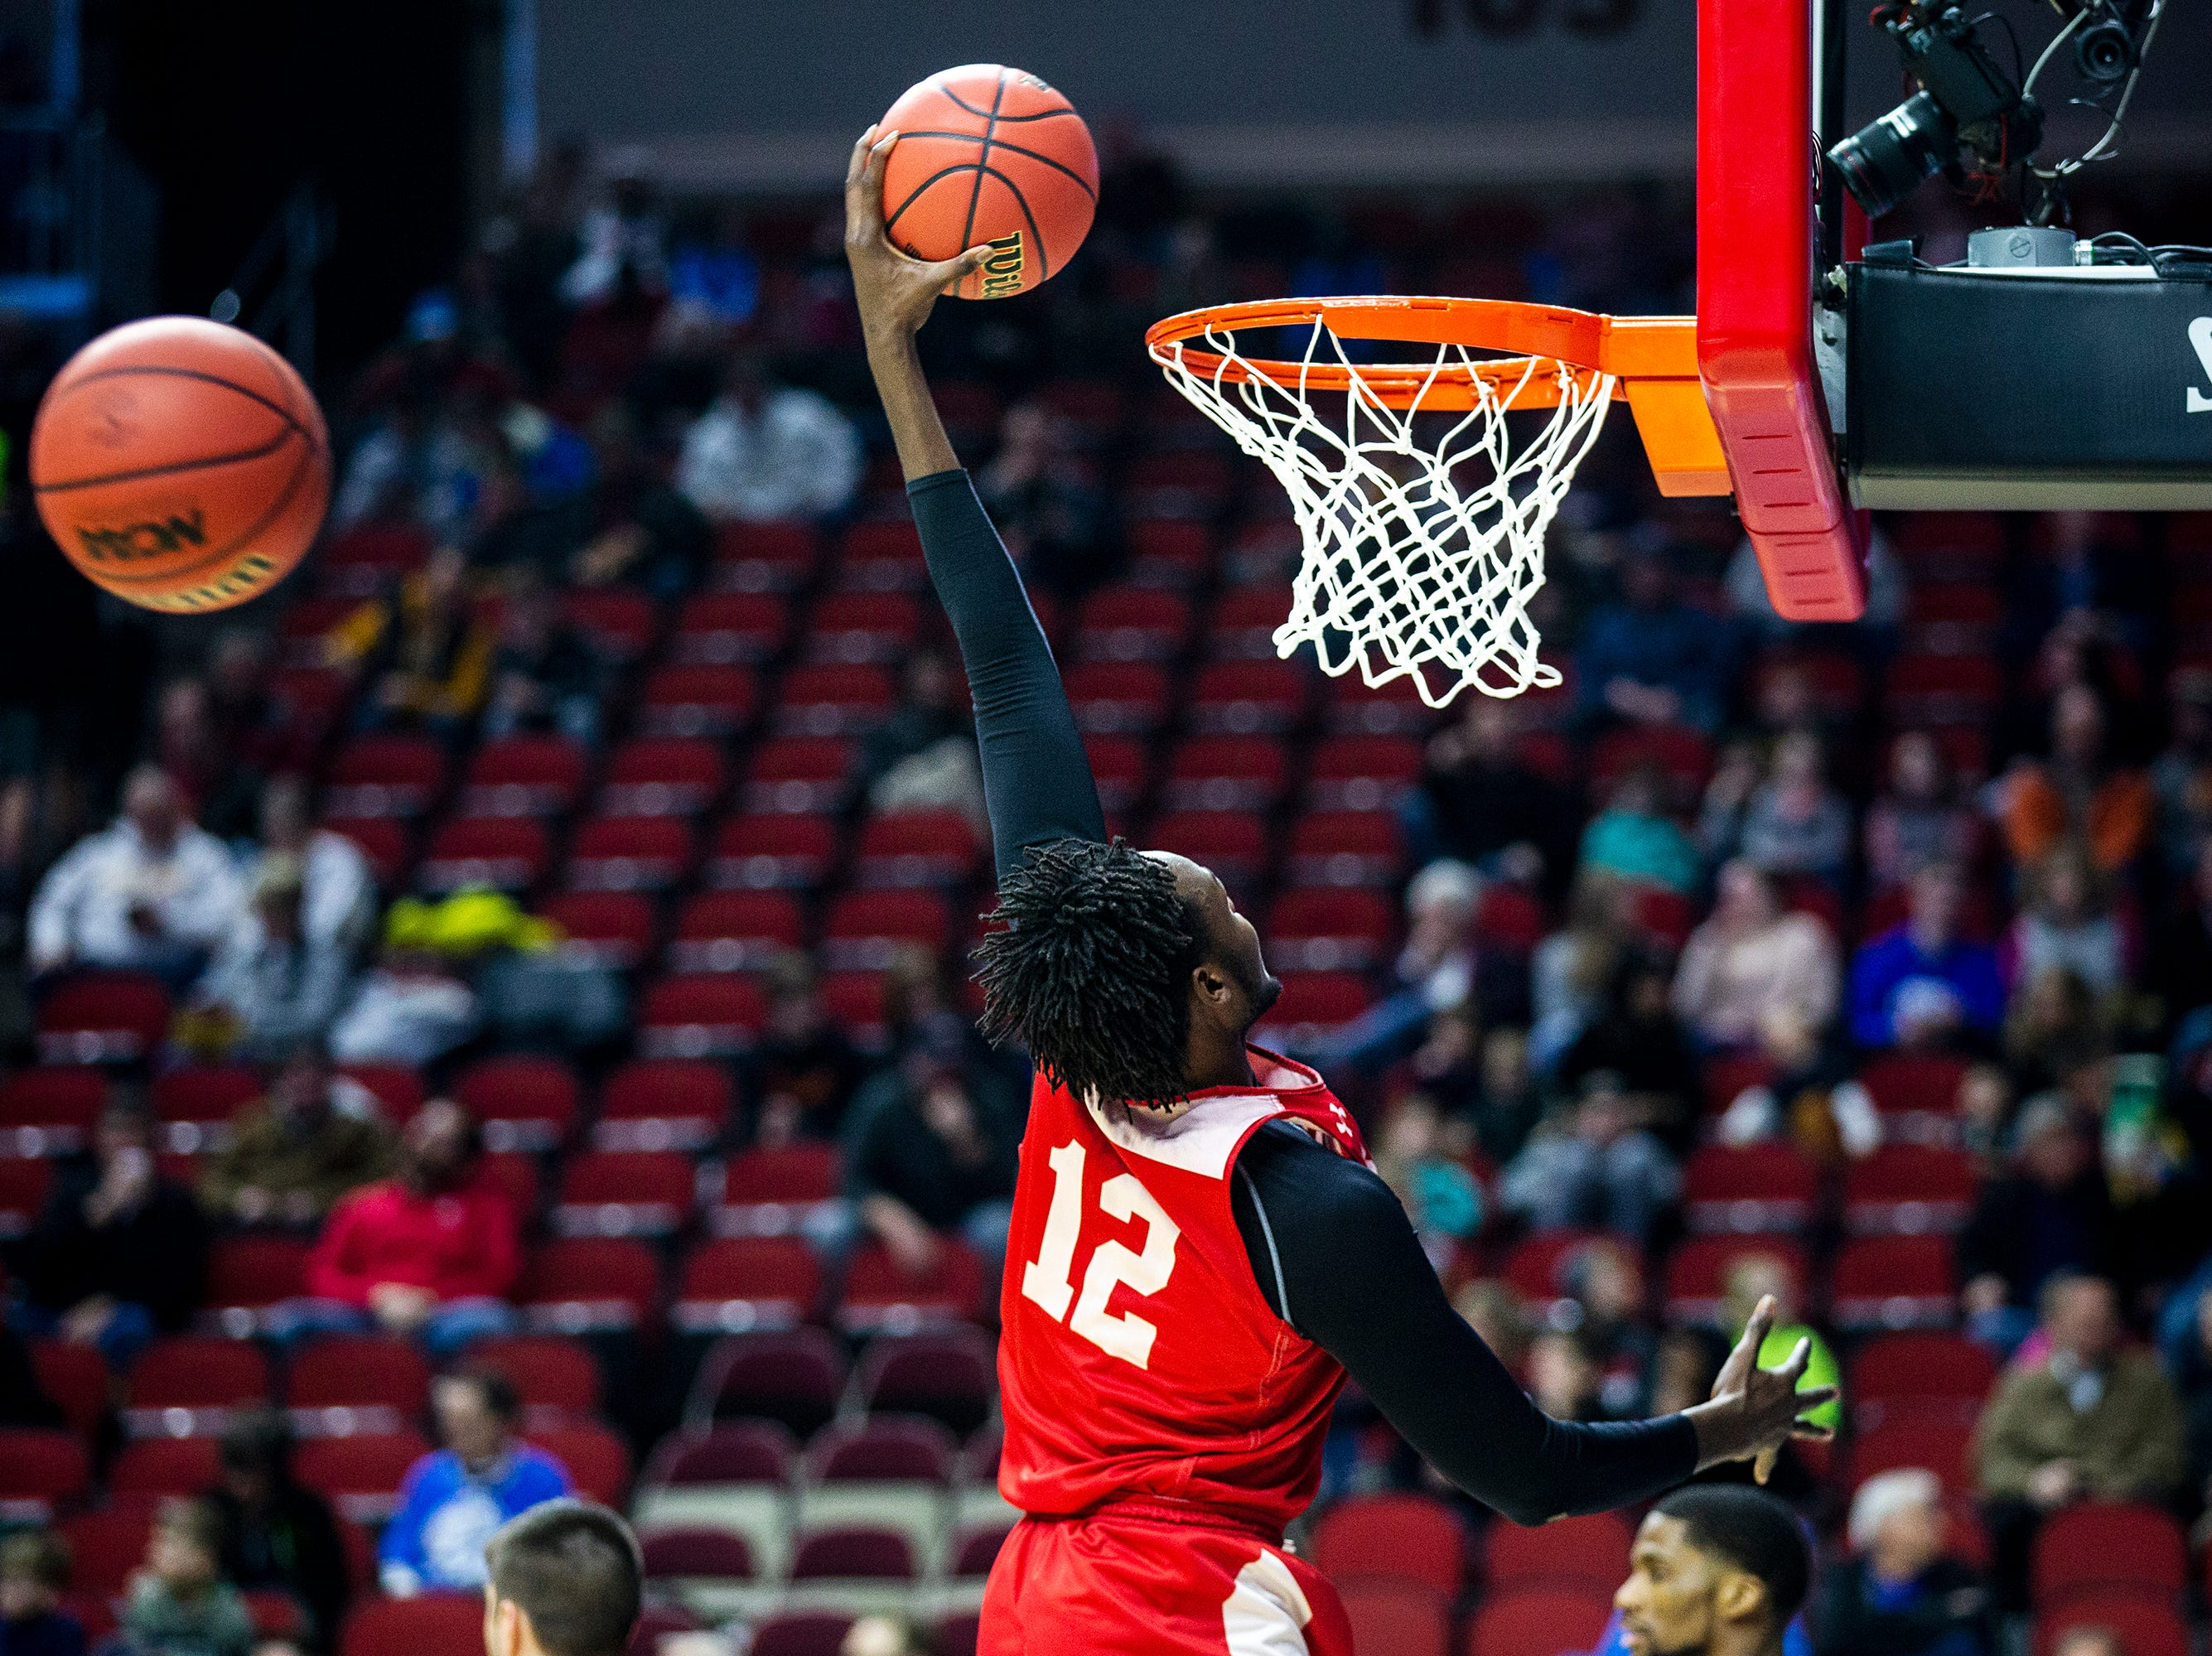 Bradley's Koch Bar dunks the ball during Bradley's open practice before the first round of the NCAA Men's Basketball Tournament on Wednesday, March 20, 2019, at Wells Fargo Arena in Des Moines, Iowa.